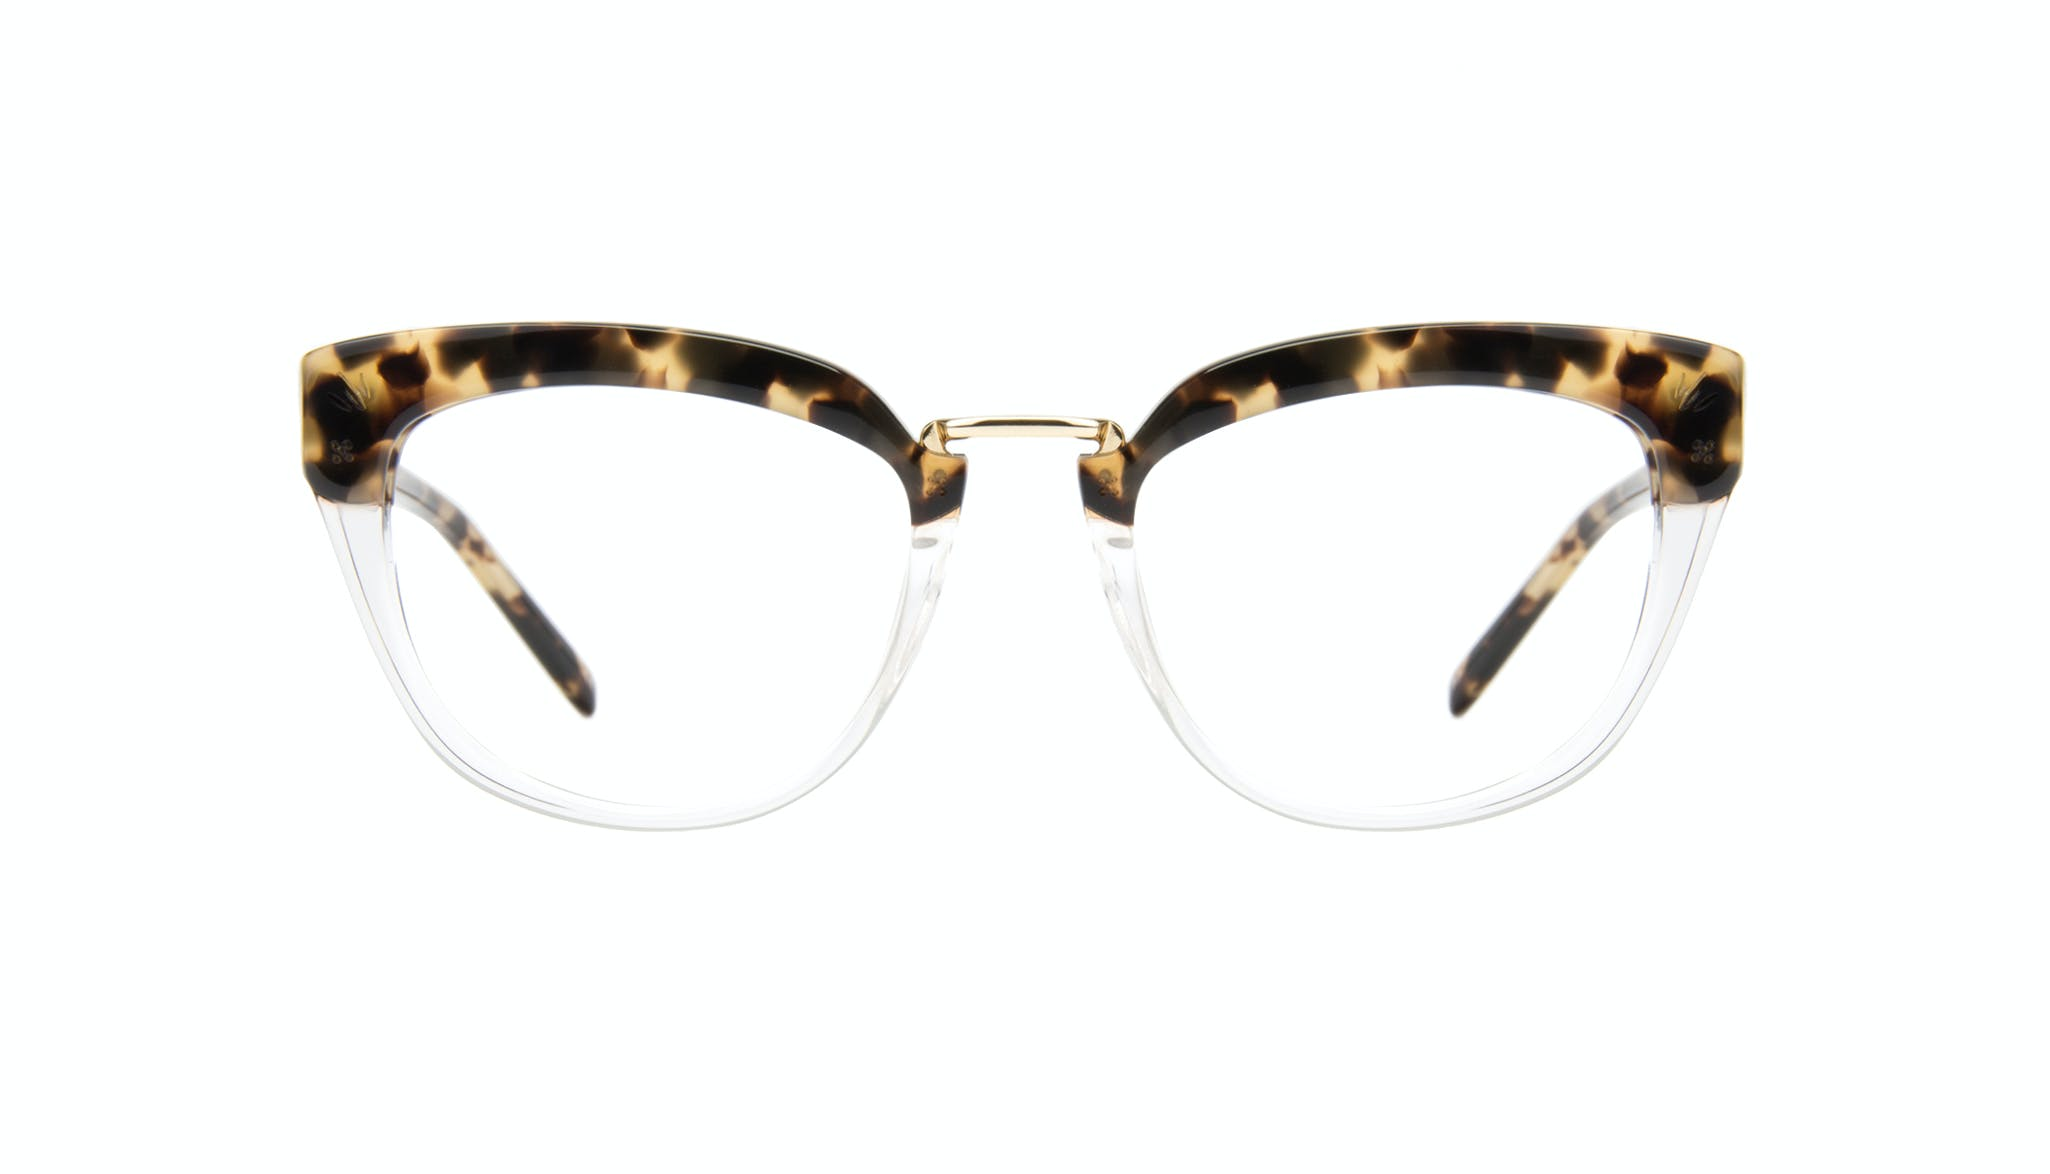 Affordable Fashion Glasses Cat Eye Daring Cateye Eyeglasses Women Pure Tortoise Front